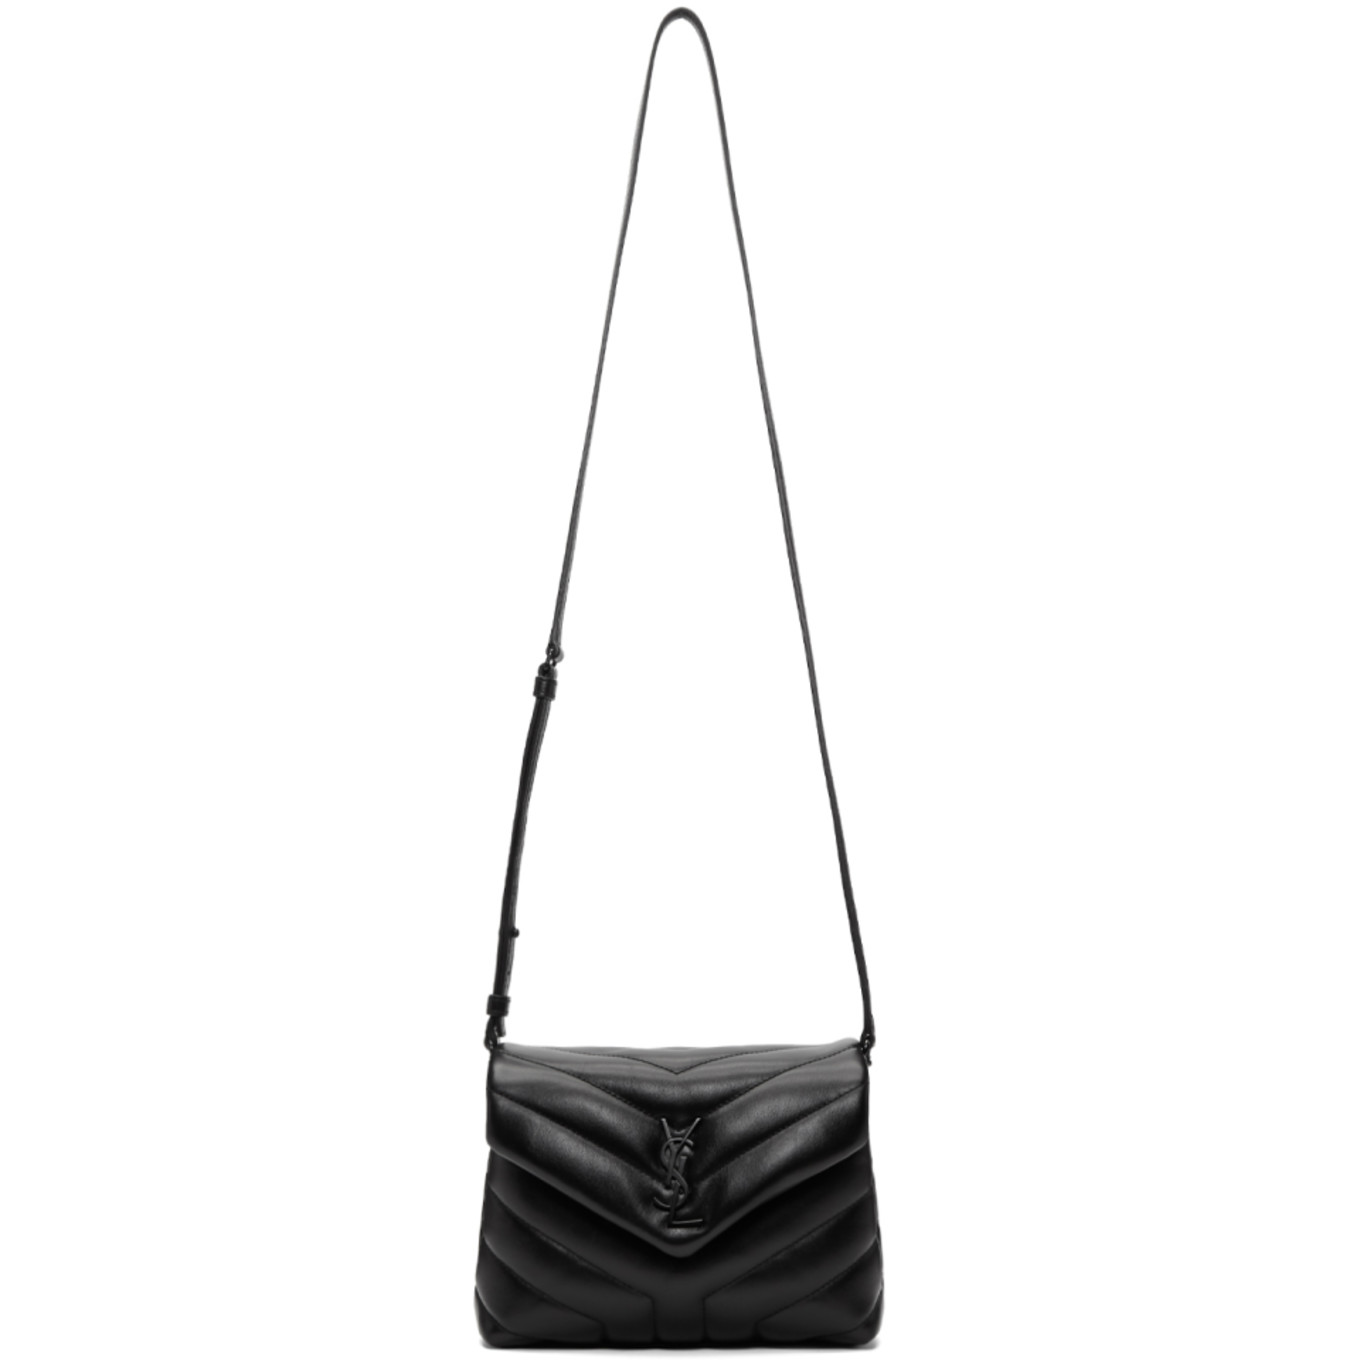 Black Quilted Toy Loulou Strap Bag by Saint Laurent